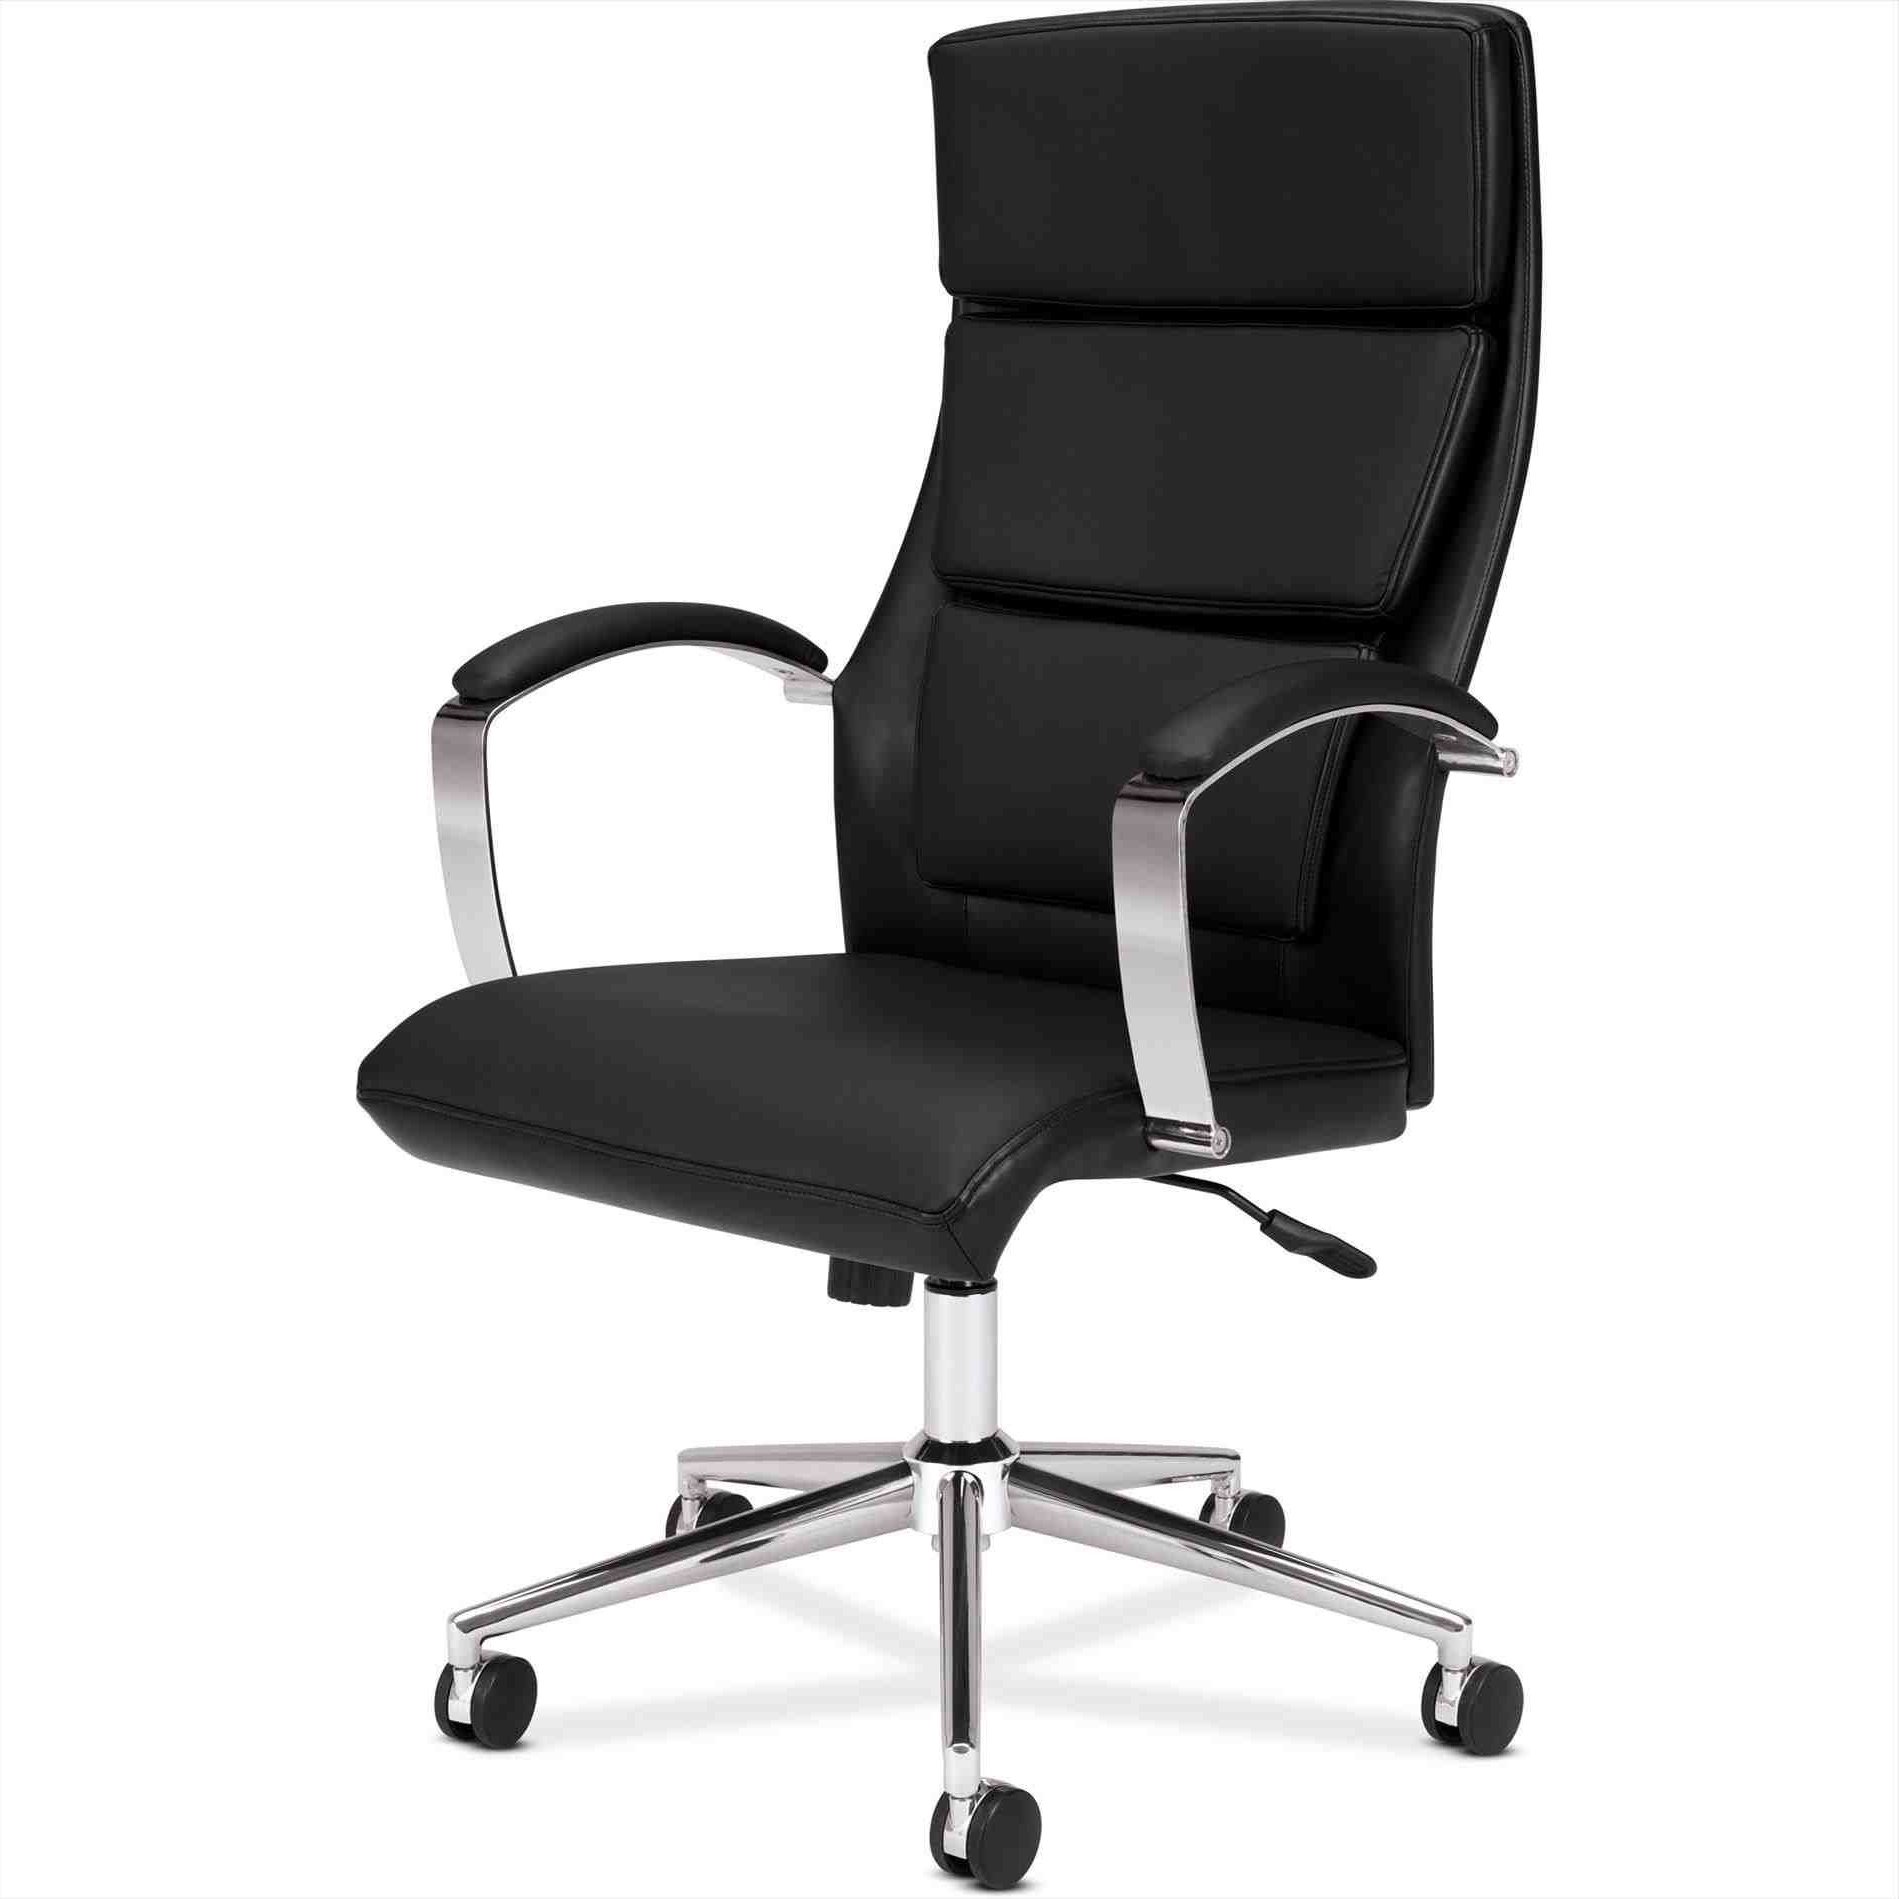 Lane Executive Office Chairs Regarding Most Recently Released Modern Executive Office Chairs With Price – Http://www (View 7 of 20)